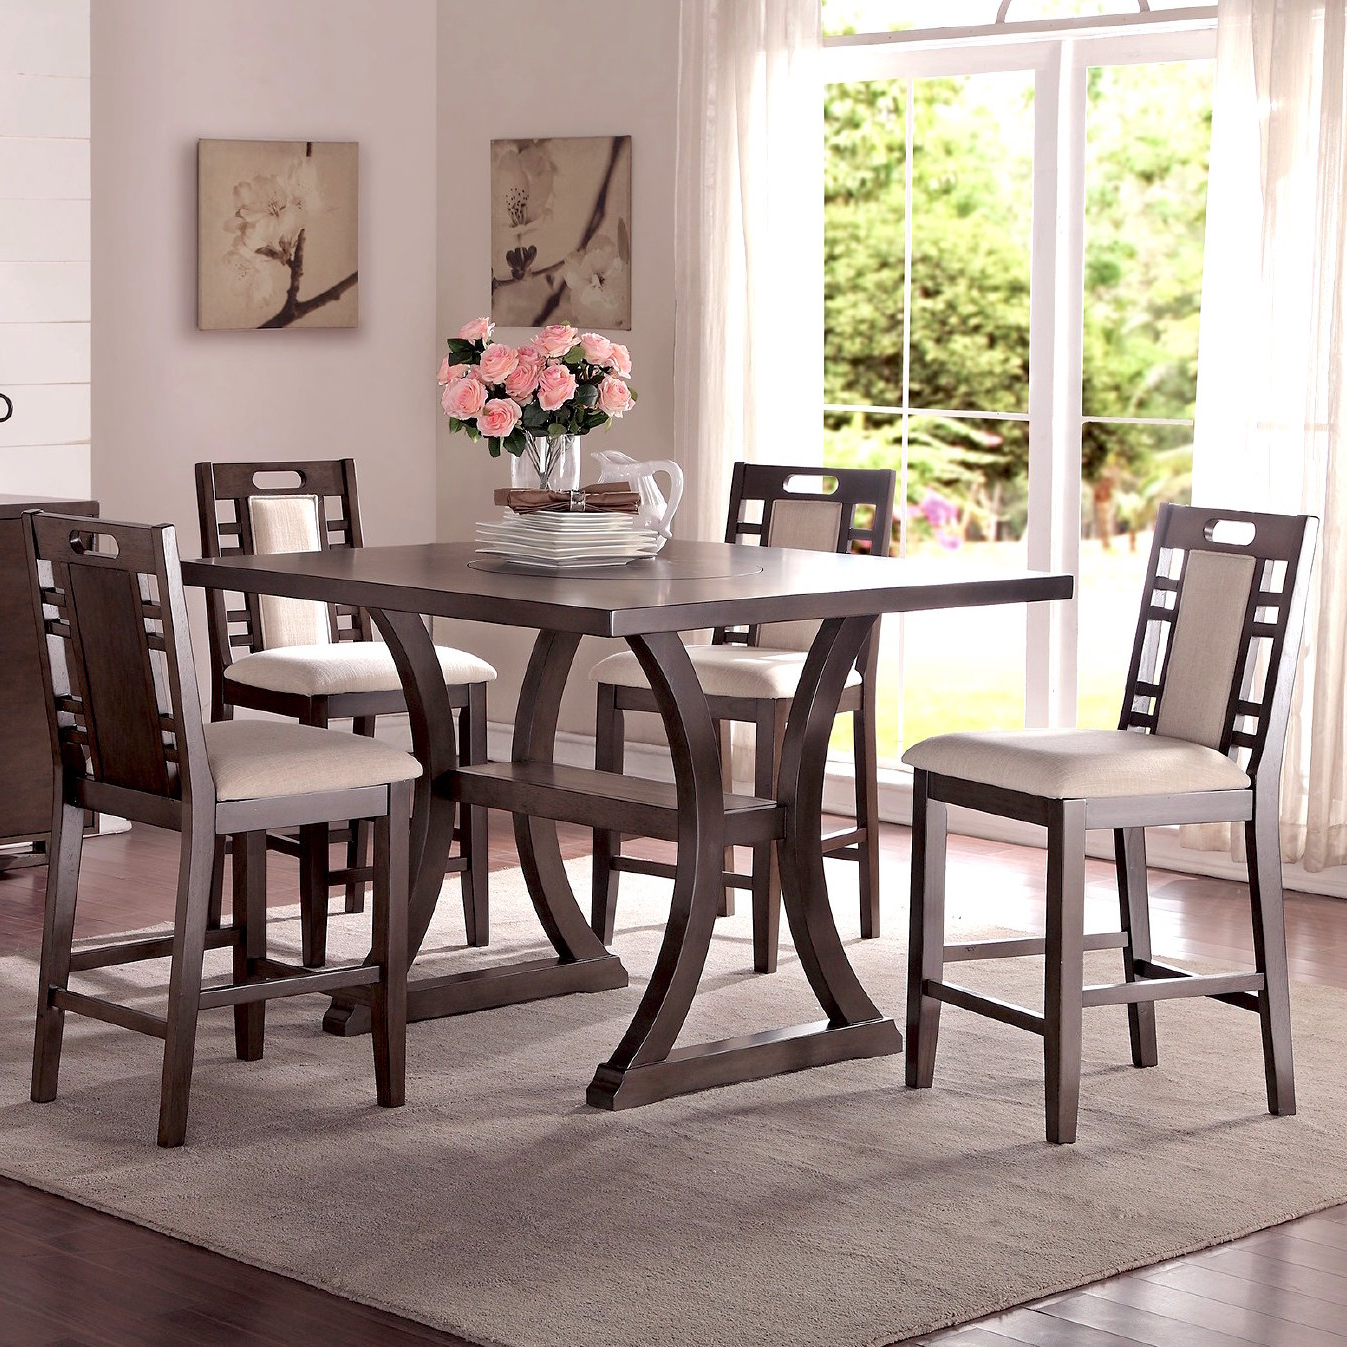 Goodman 5 Piece Solid Wood Dining Sets (Set Of 5) With Regard To Most Recently Released Adele 5 Piece Counter Height Dining Set (View 12 of 20)